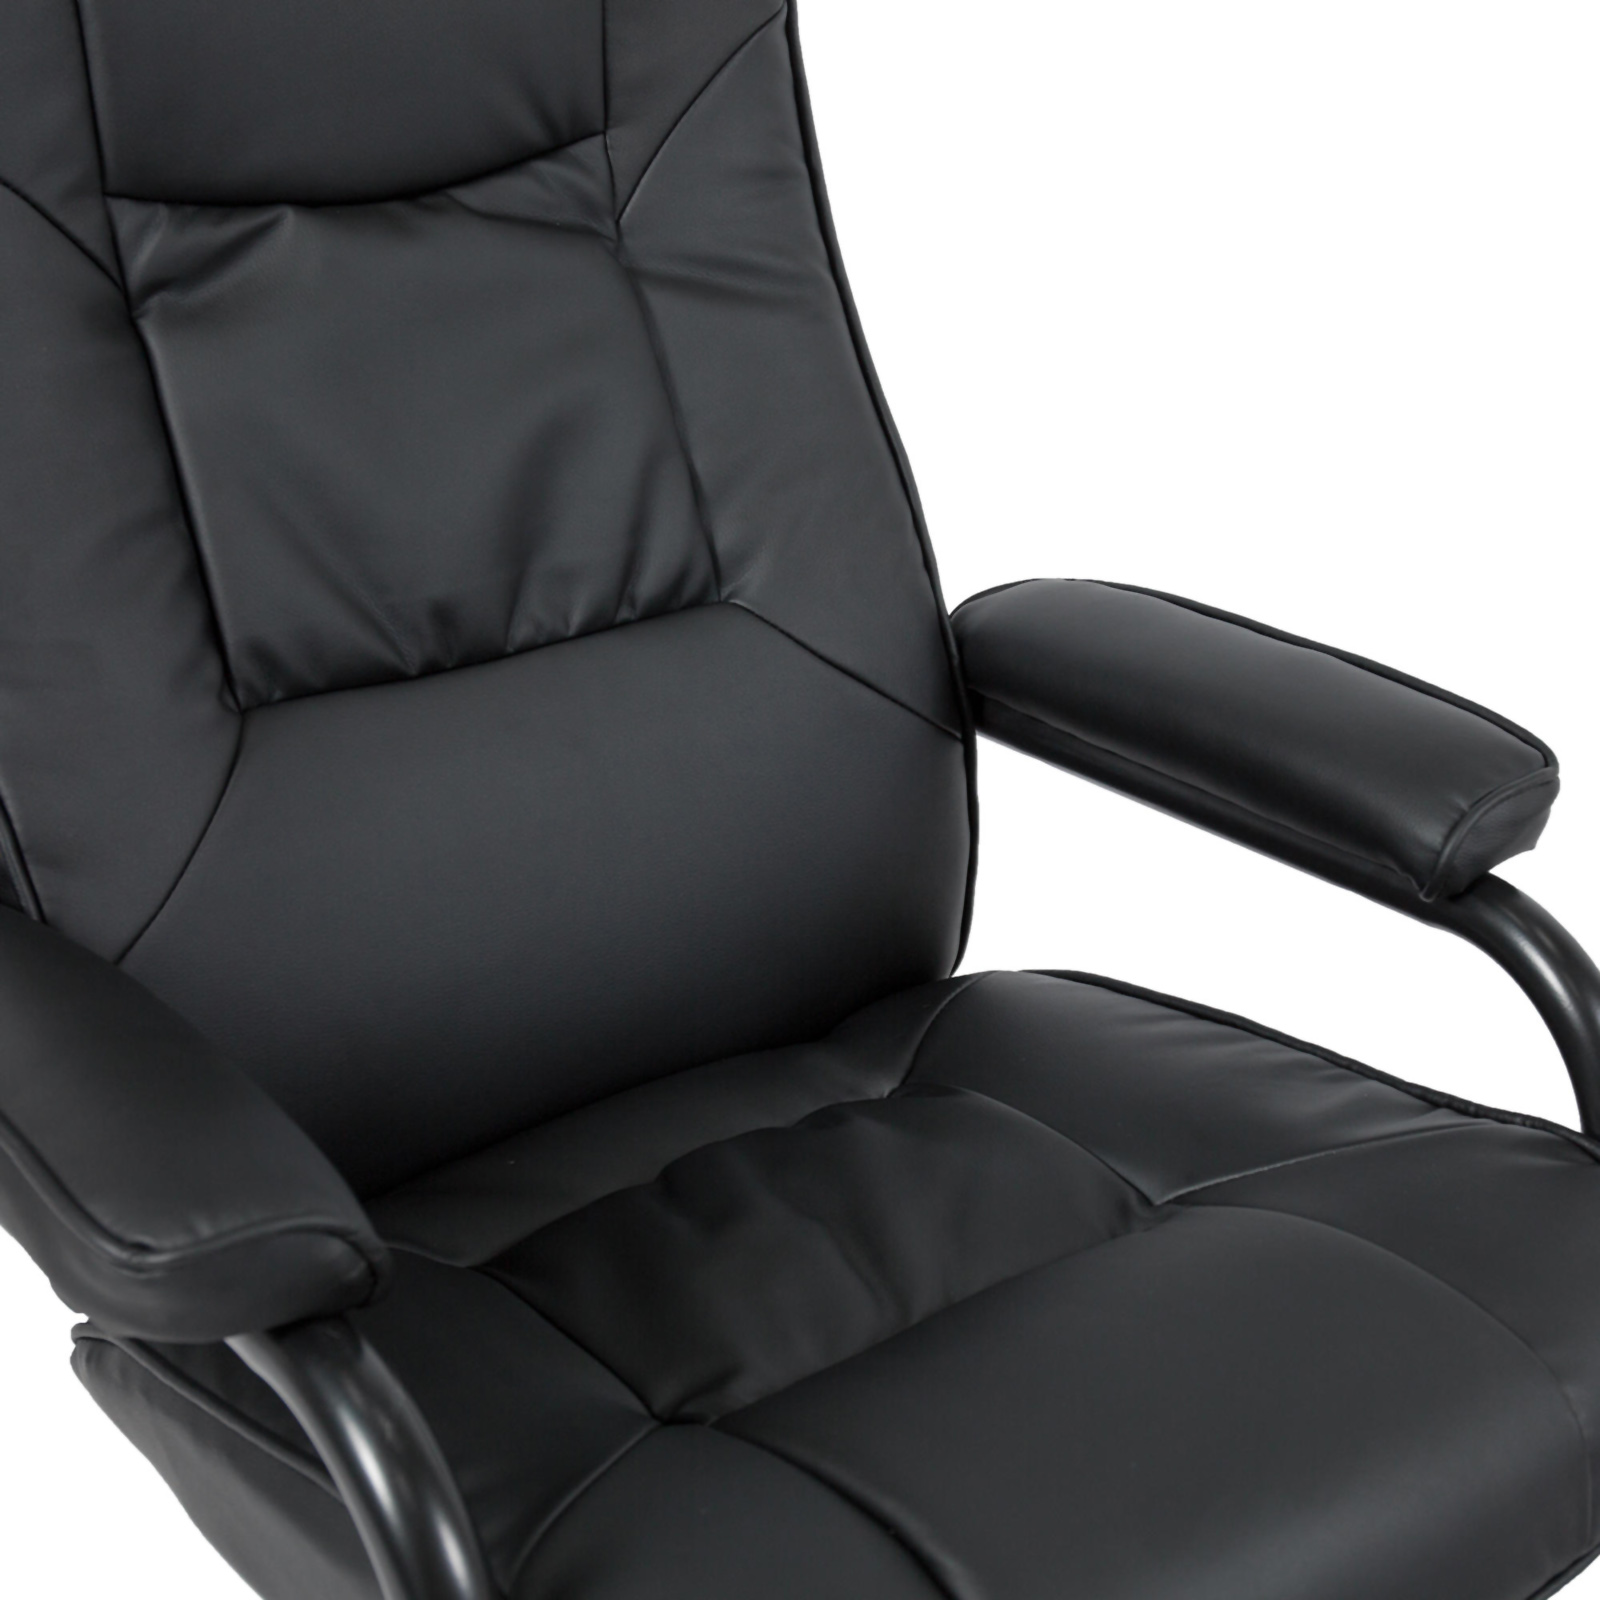 leather swivel recliner chair and stool rei low camp best choice products 26 w ottoman sears marketplace with